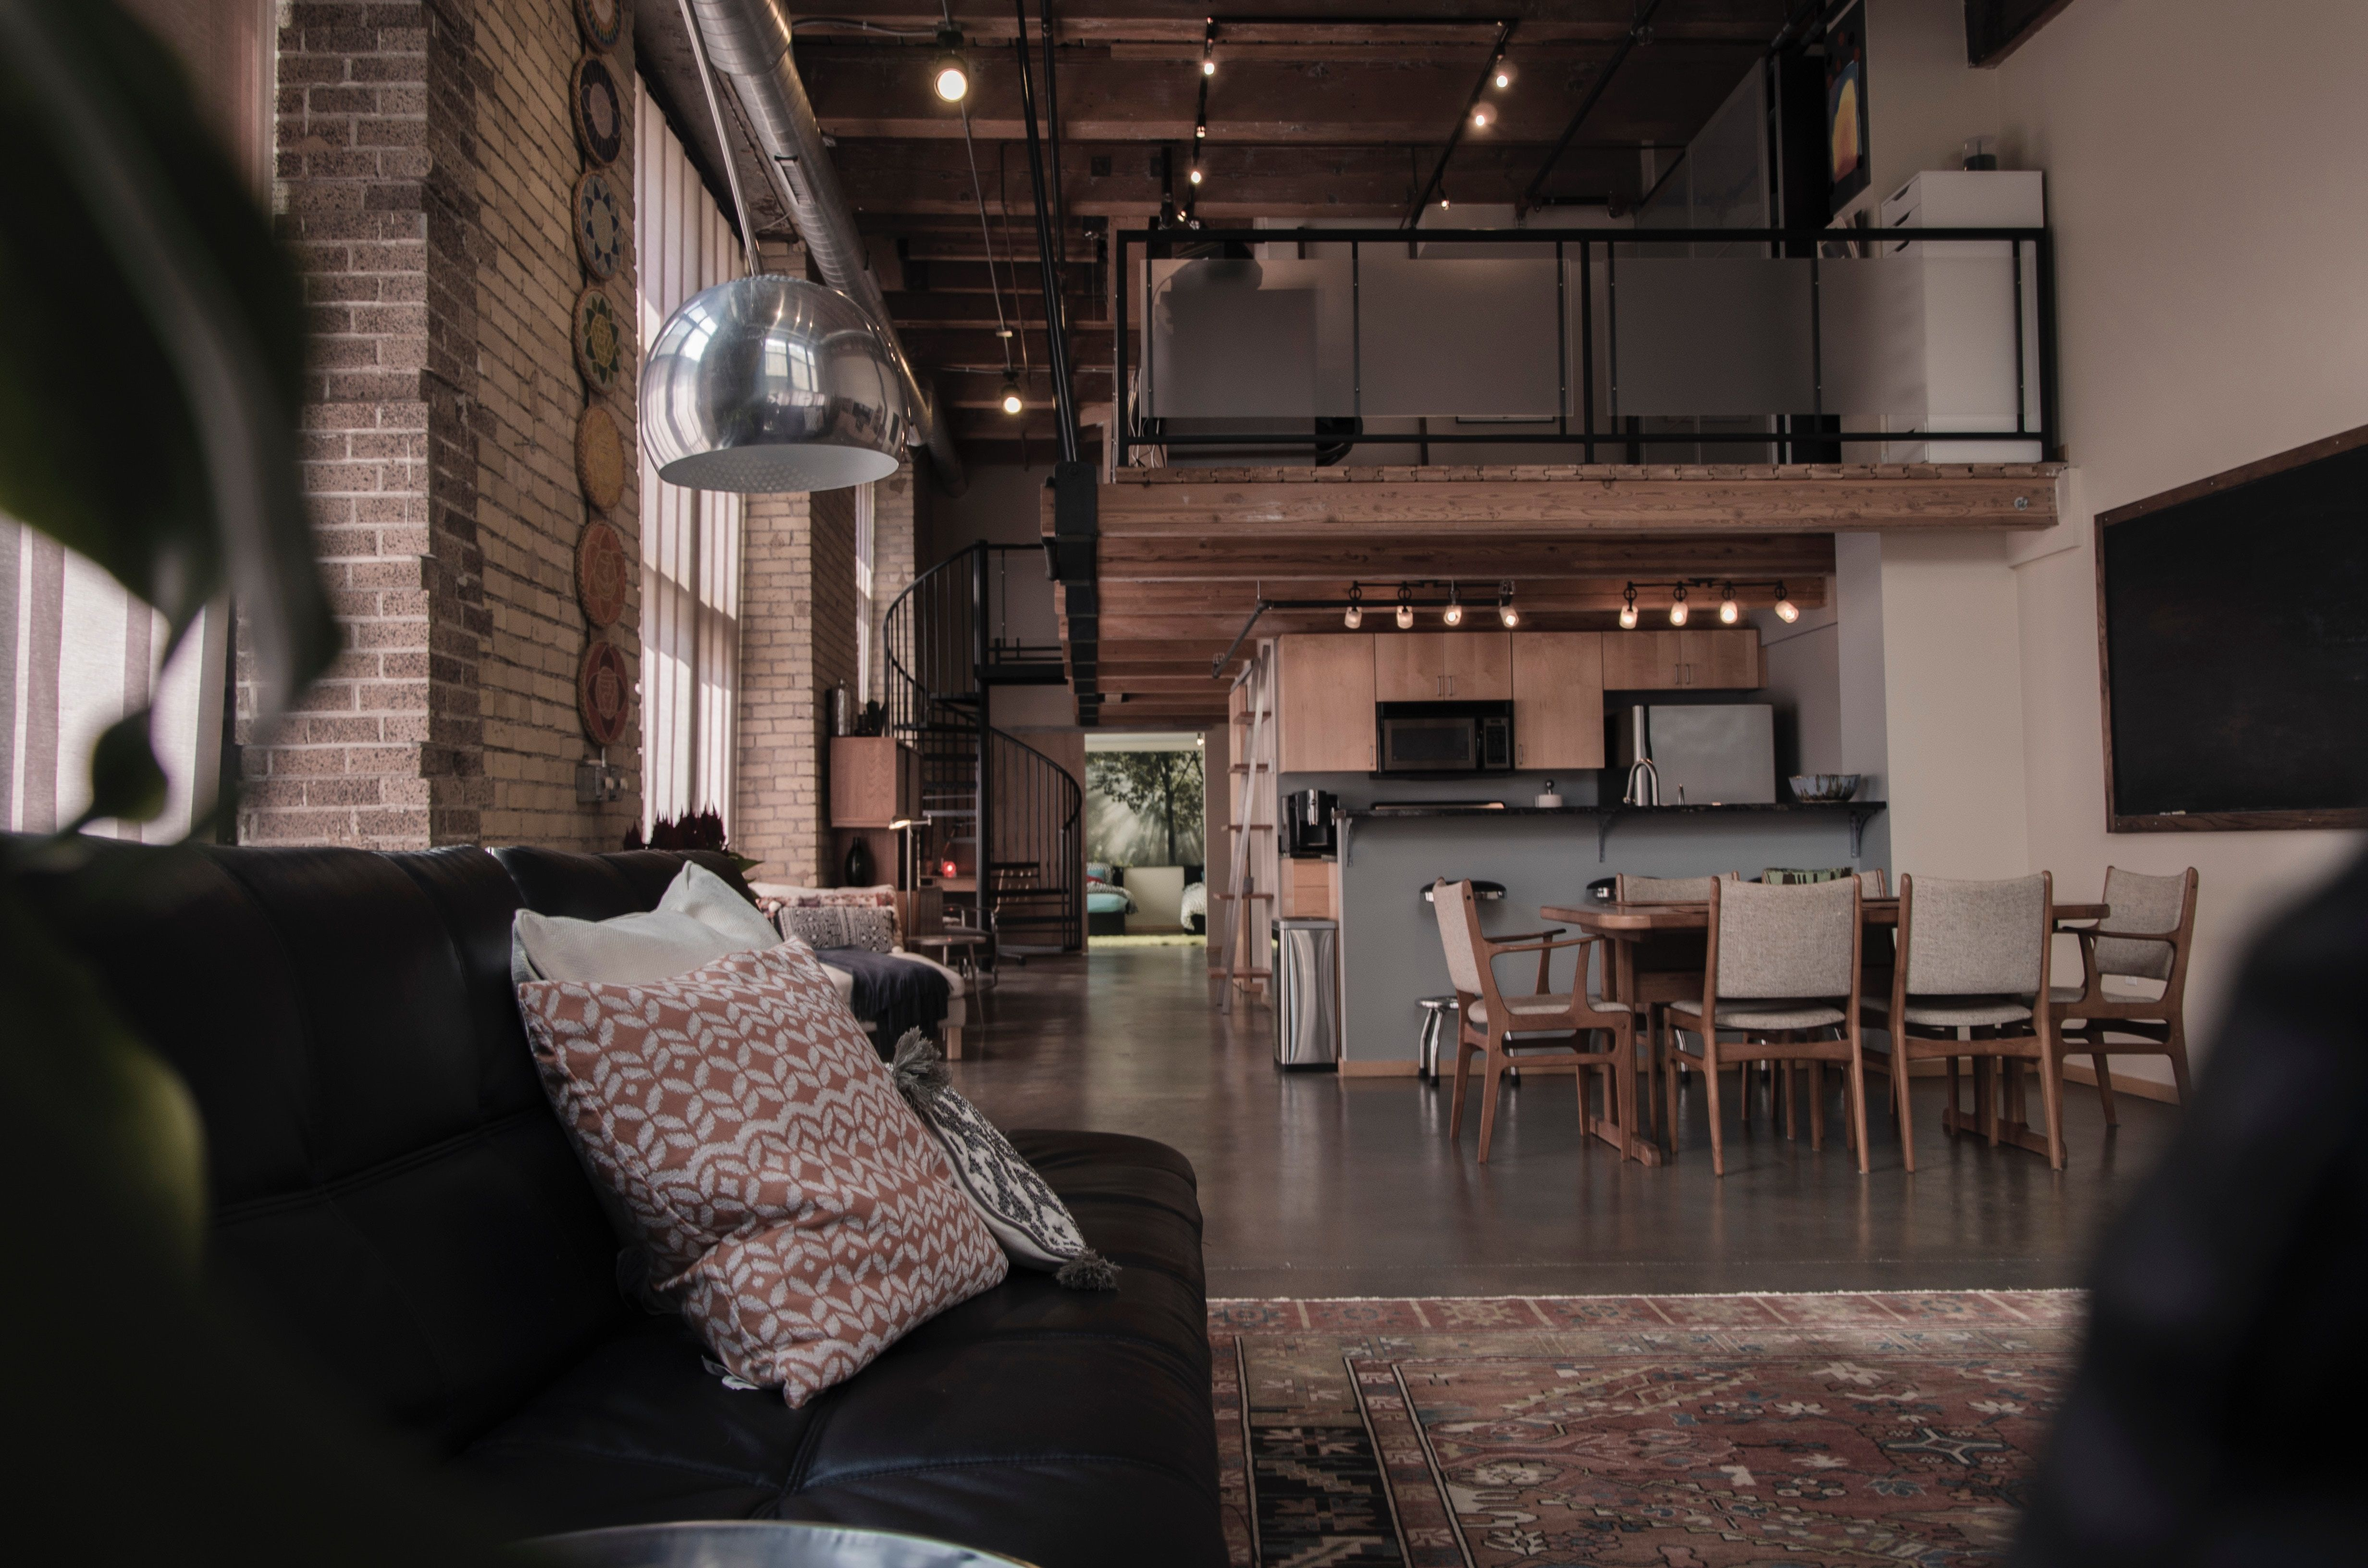 How To Decorate A Loft Tips Tricks Open Floor Plan Decorating Ideas Loft Apartment Decorating Ideas Loft Apartmen Loft Style Home Interior Design Home